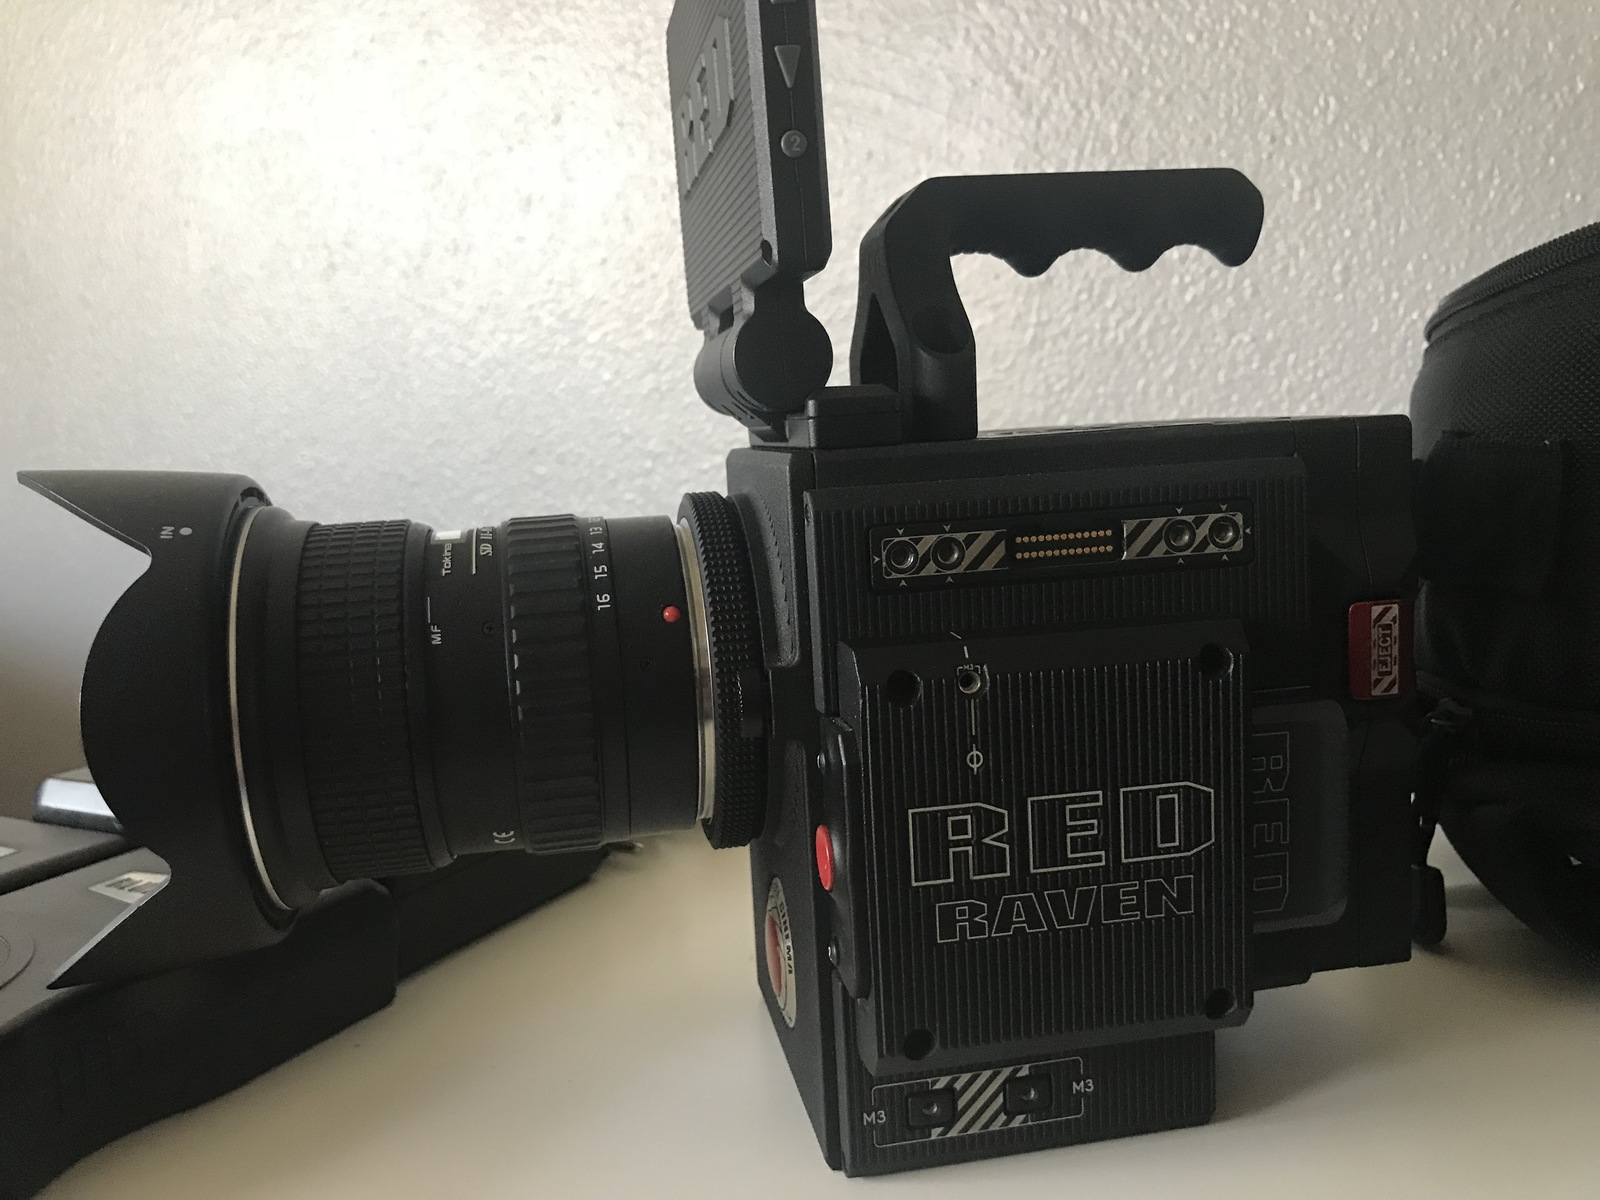 Red Raven Specs Rent A Red Raven 4 5k Package With Ronin Mx Lens Light Sound Best Prices Sharegrid Los Angeles